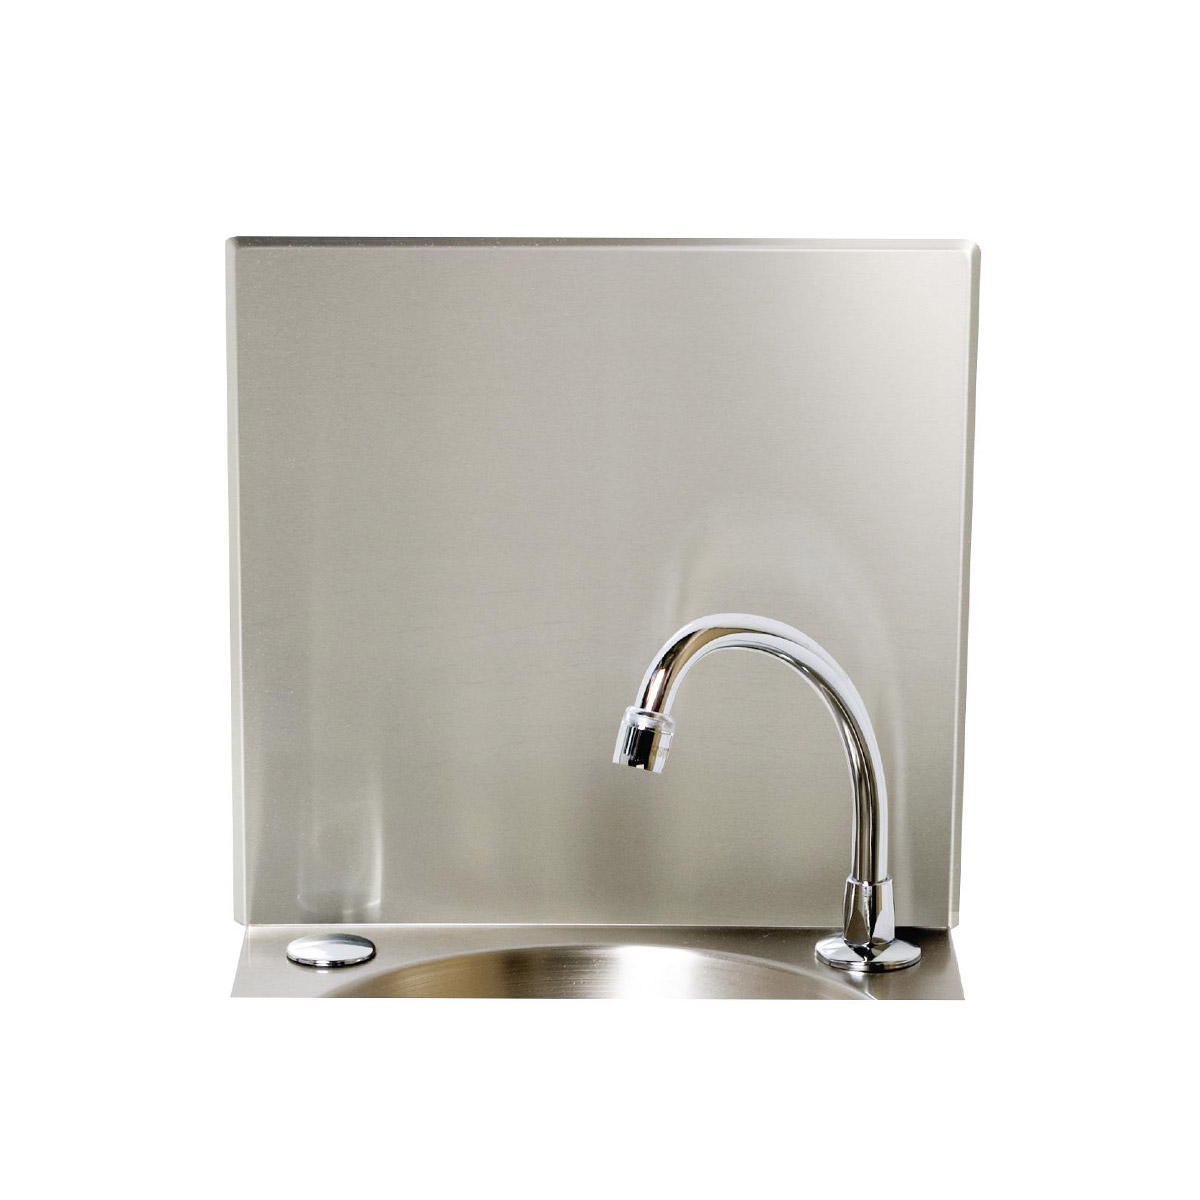 Stainless Steel Splashback Panel Designed For Use With The Basix Knee Operated Sink (CC260)